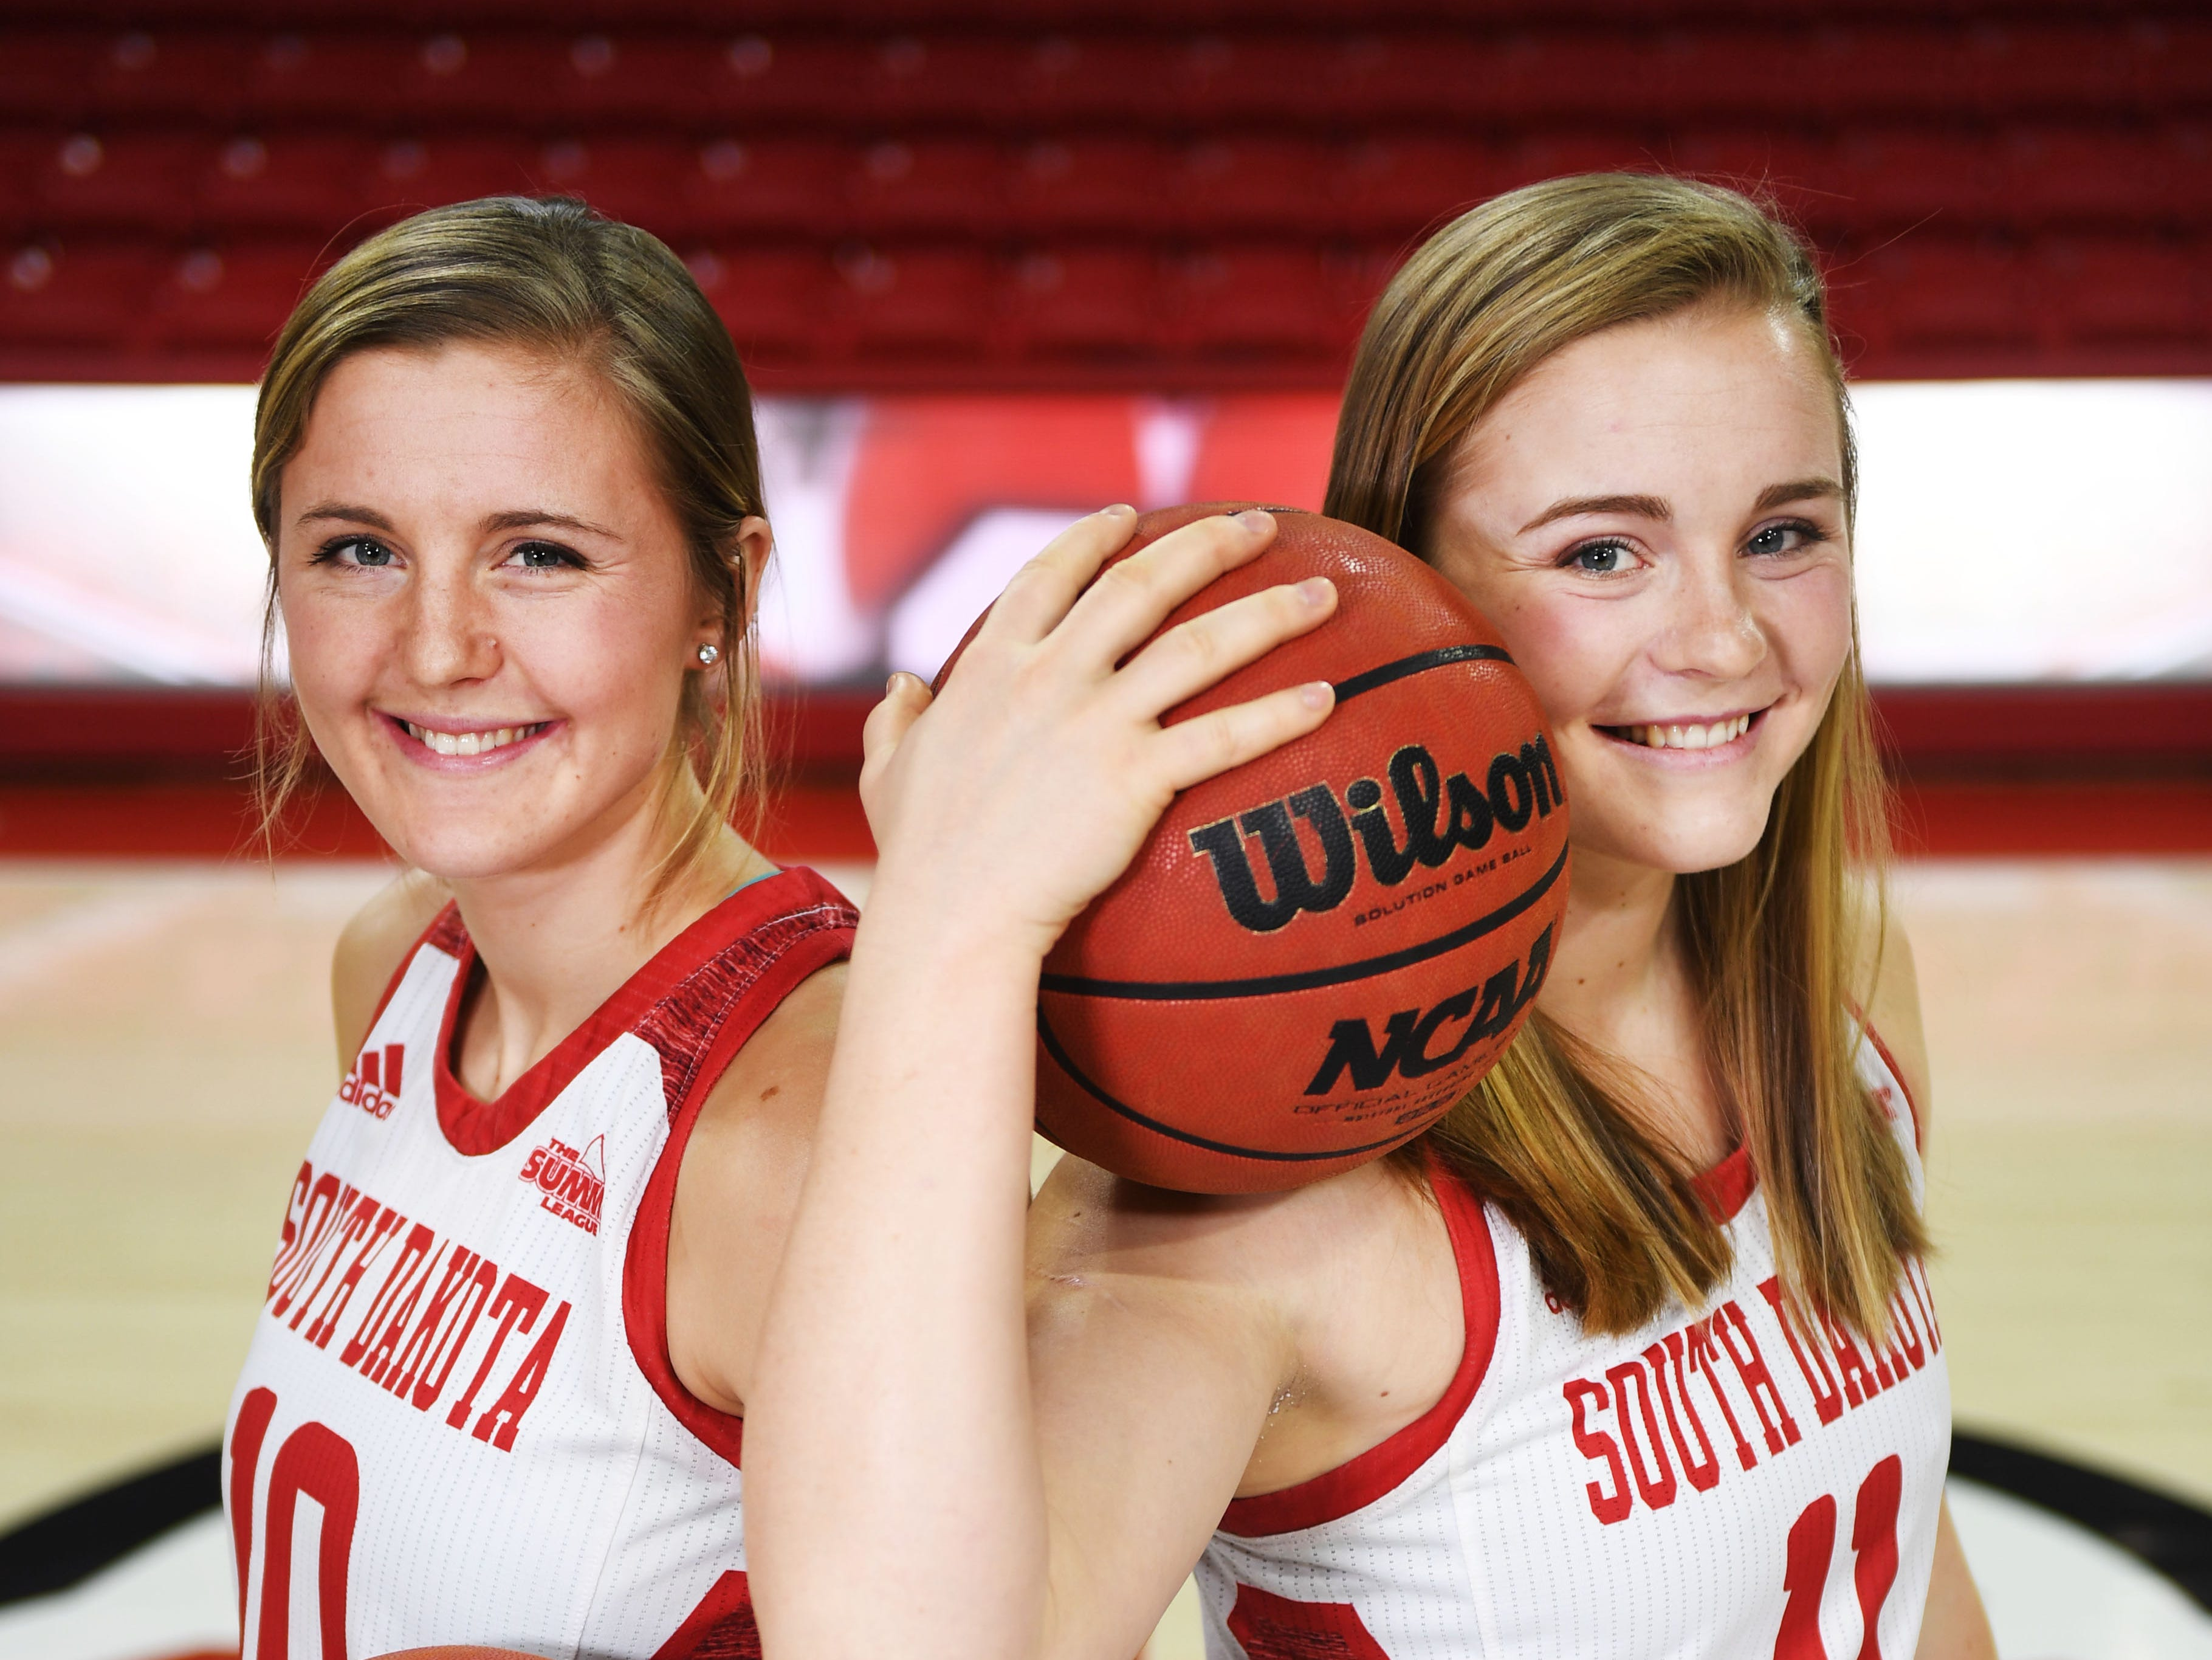 Allison Arens (10) and Monica Arens (11) Tuesday, Feb. 27, at Sanford Coyote Sports Center in Vermillion.